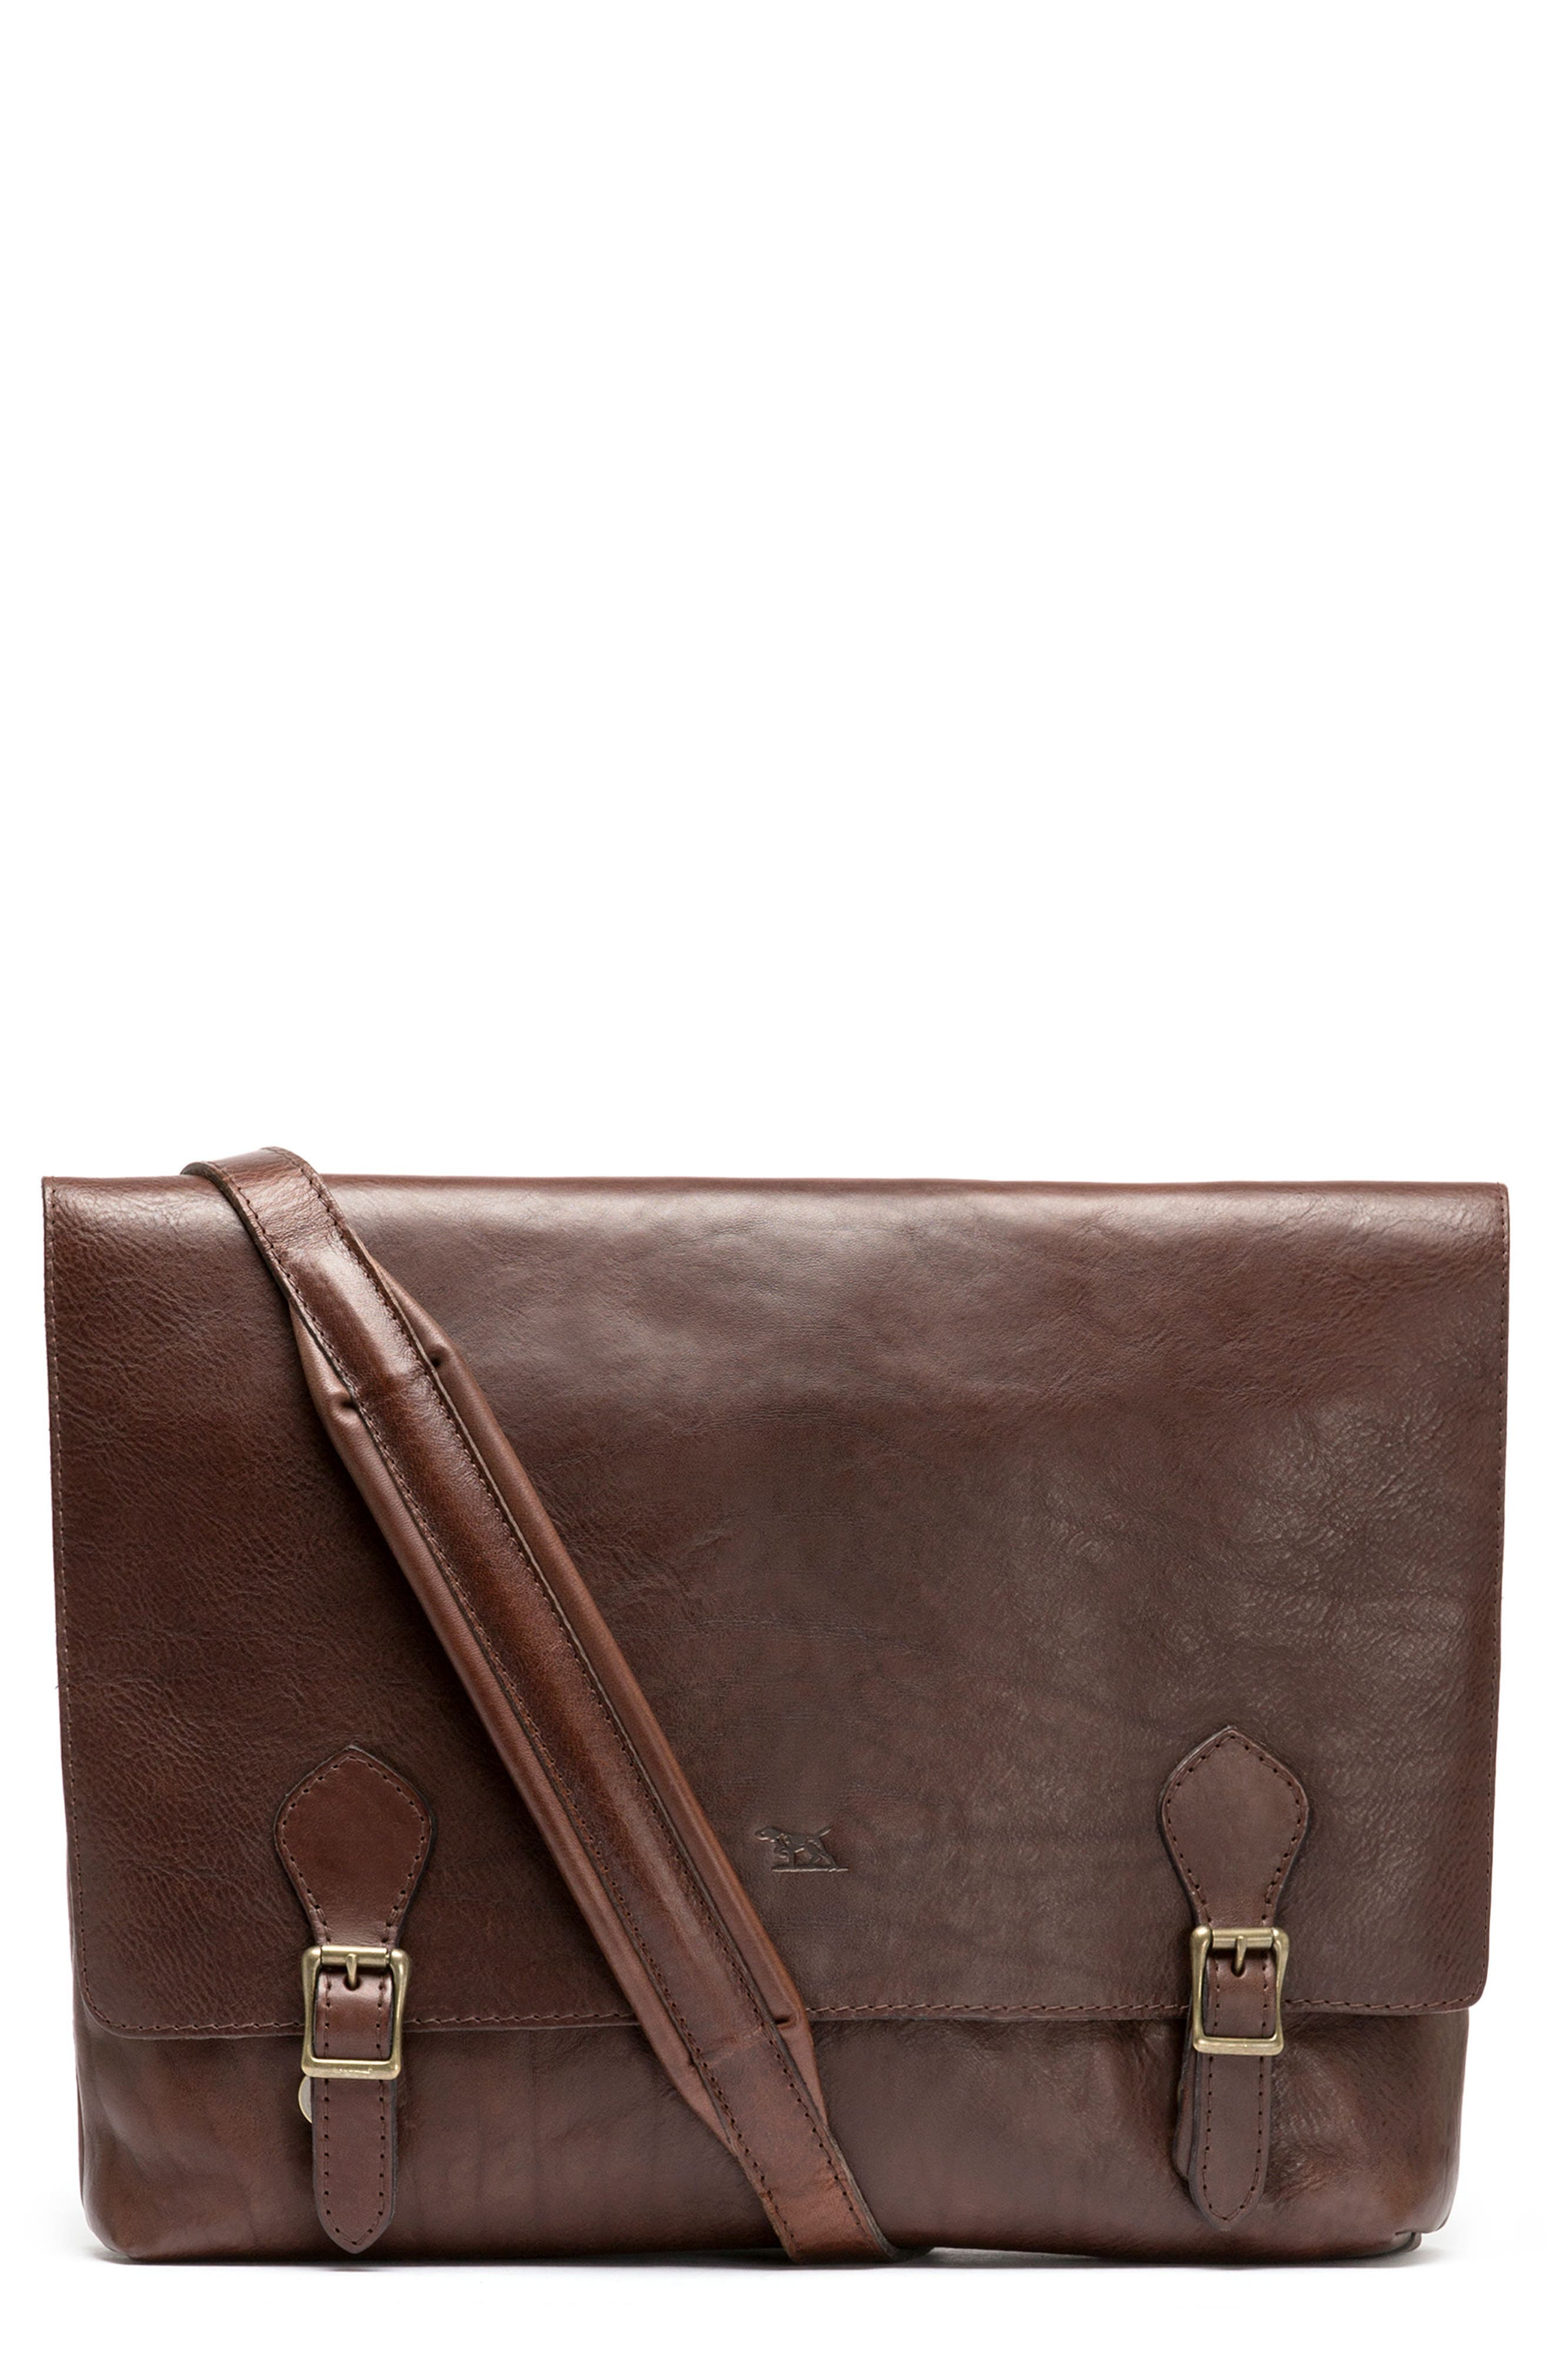 Woodstock Leather Satchel,                             Main thumbnail 1, color,                             Cocoa